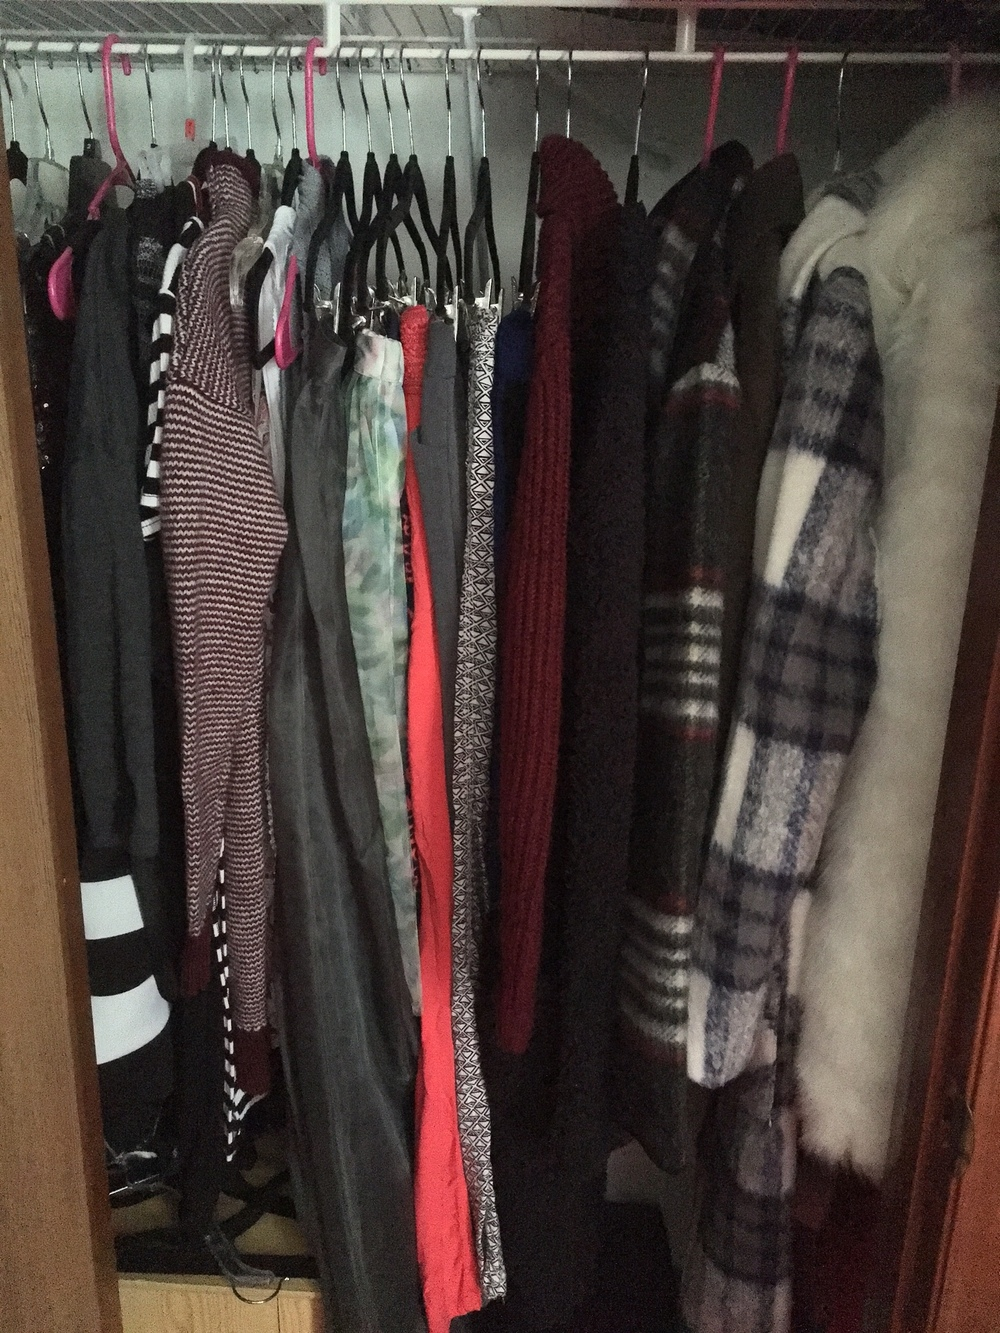 This is the inside of my closet, which is actually located on my wall that I recently painted. I tried to color-code it just like everything, but I started with my dresses, skirts/trousers, long shirts, then coats.- I don't think my closet has ever looked neater than it does now! I love it!